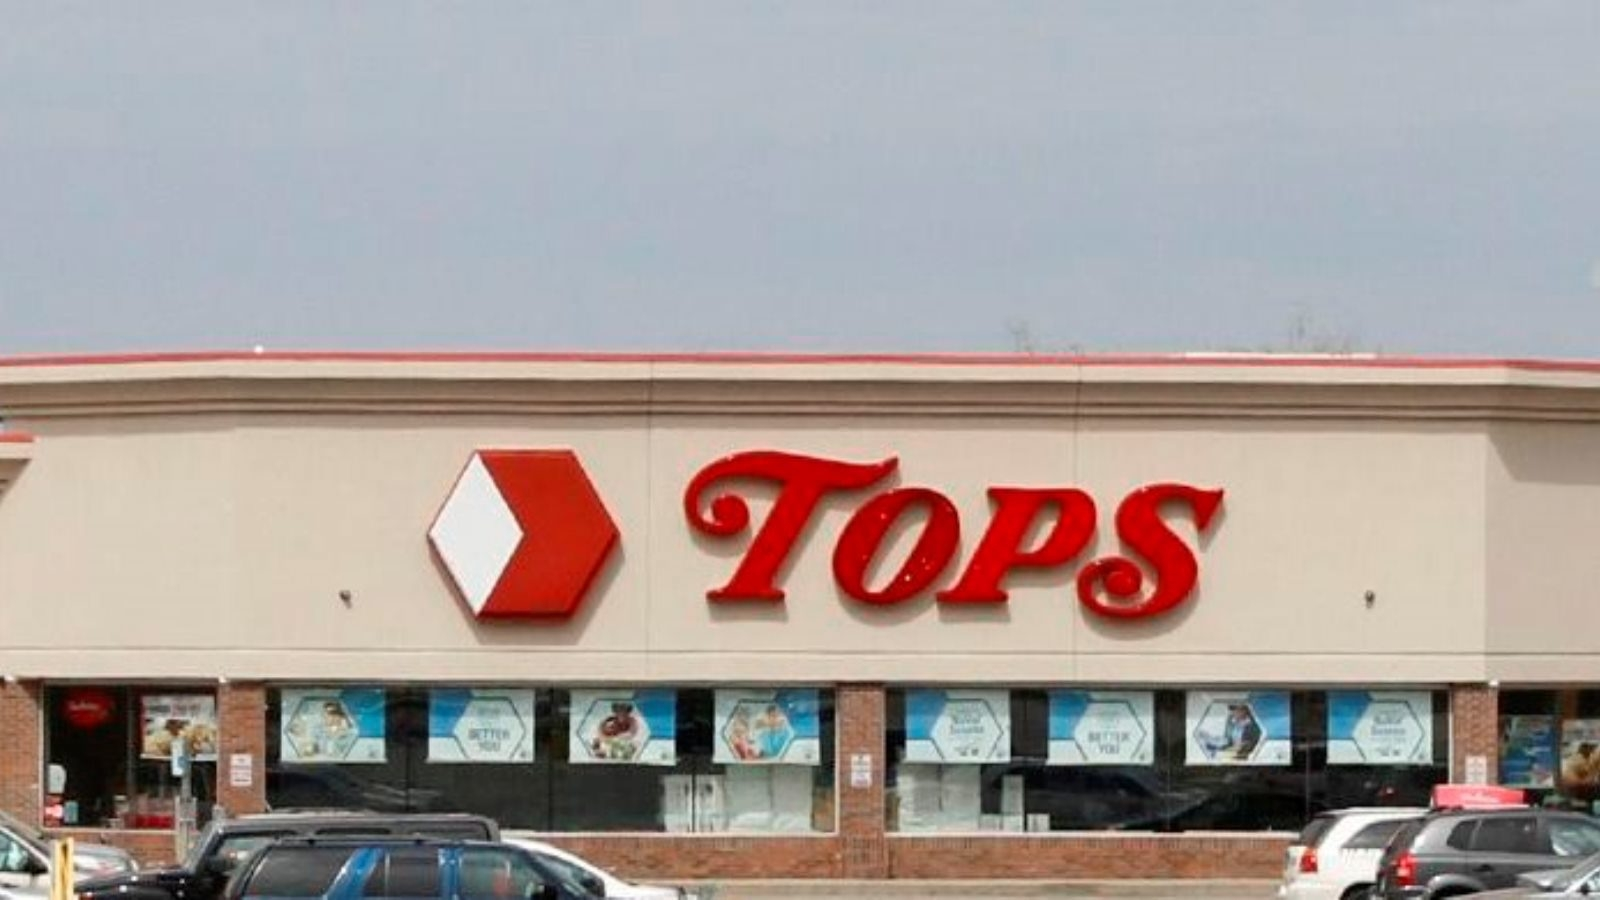 Tops has acquired an IGA store in Central New York. It will open under the Tops banner this month. (John Hickey/News file photo)